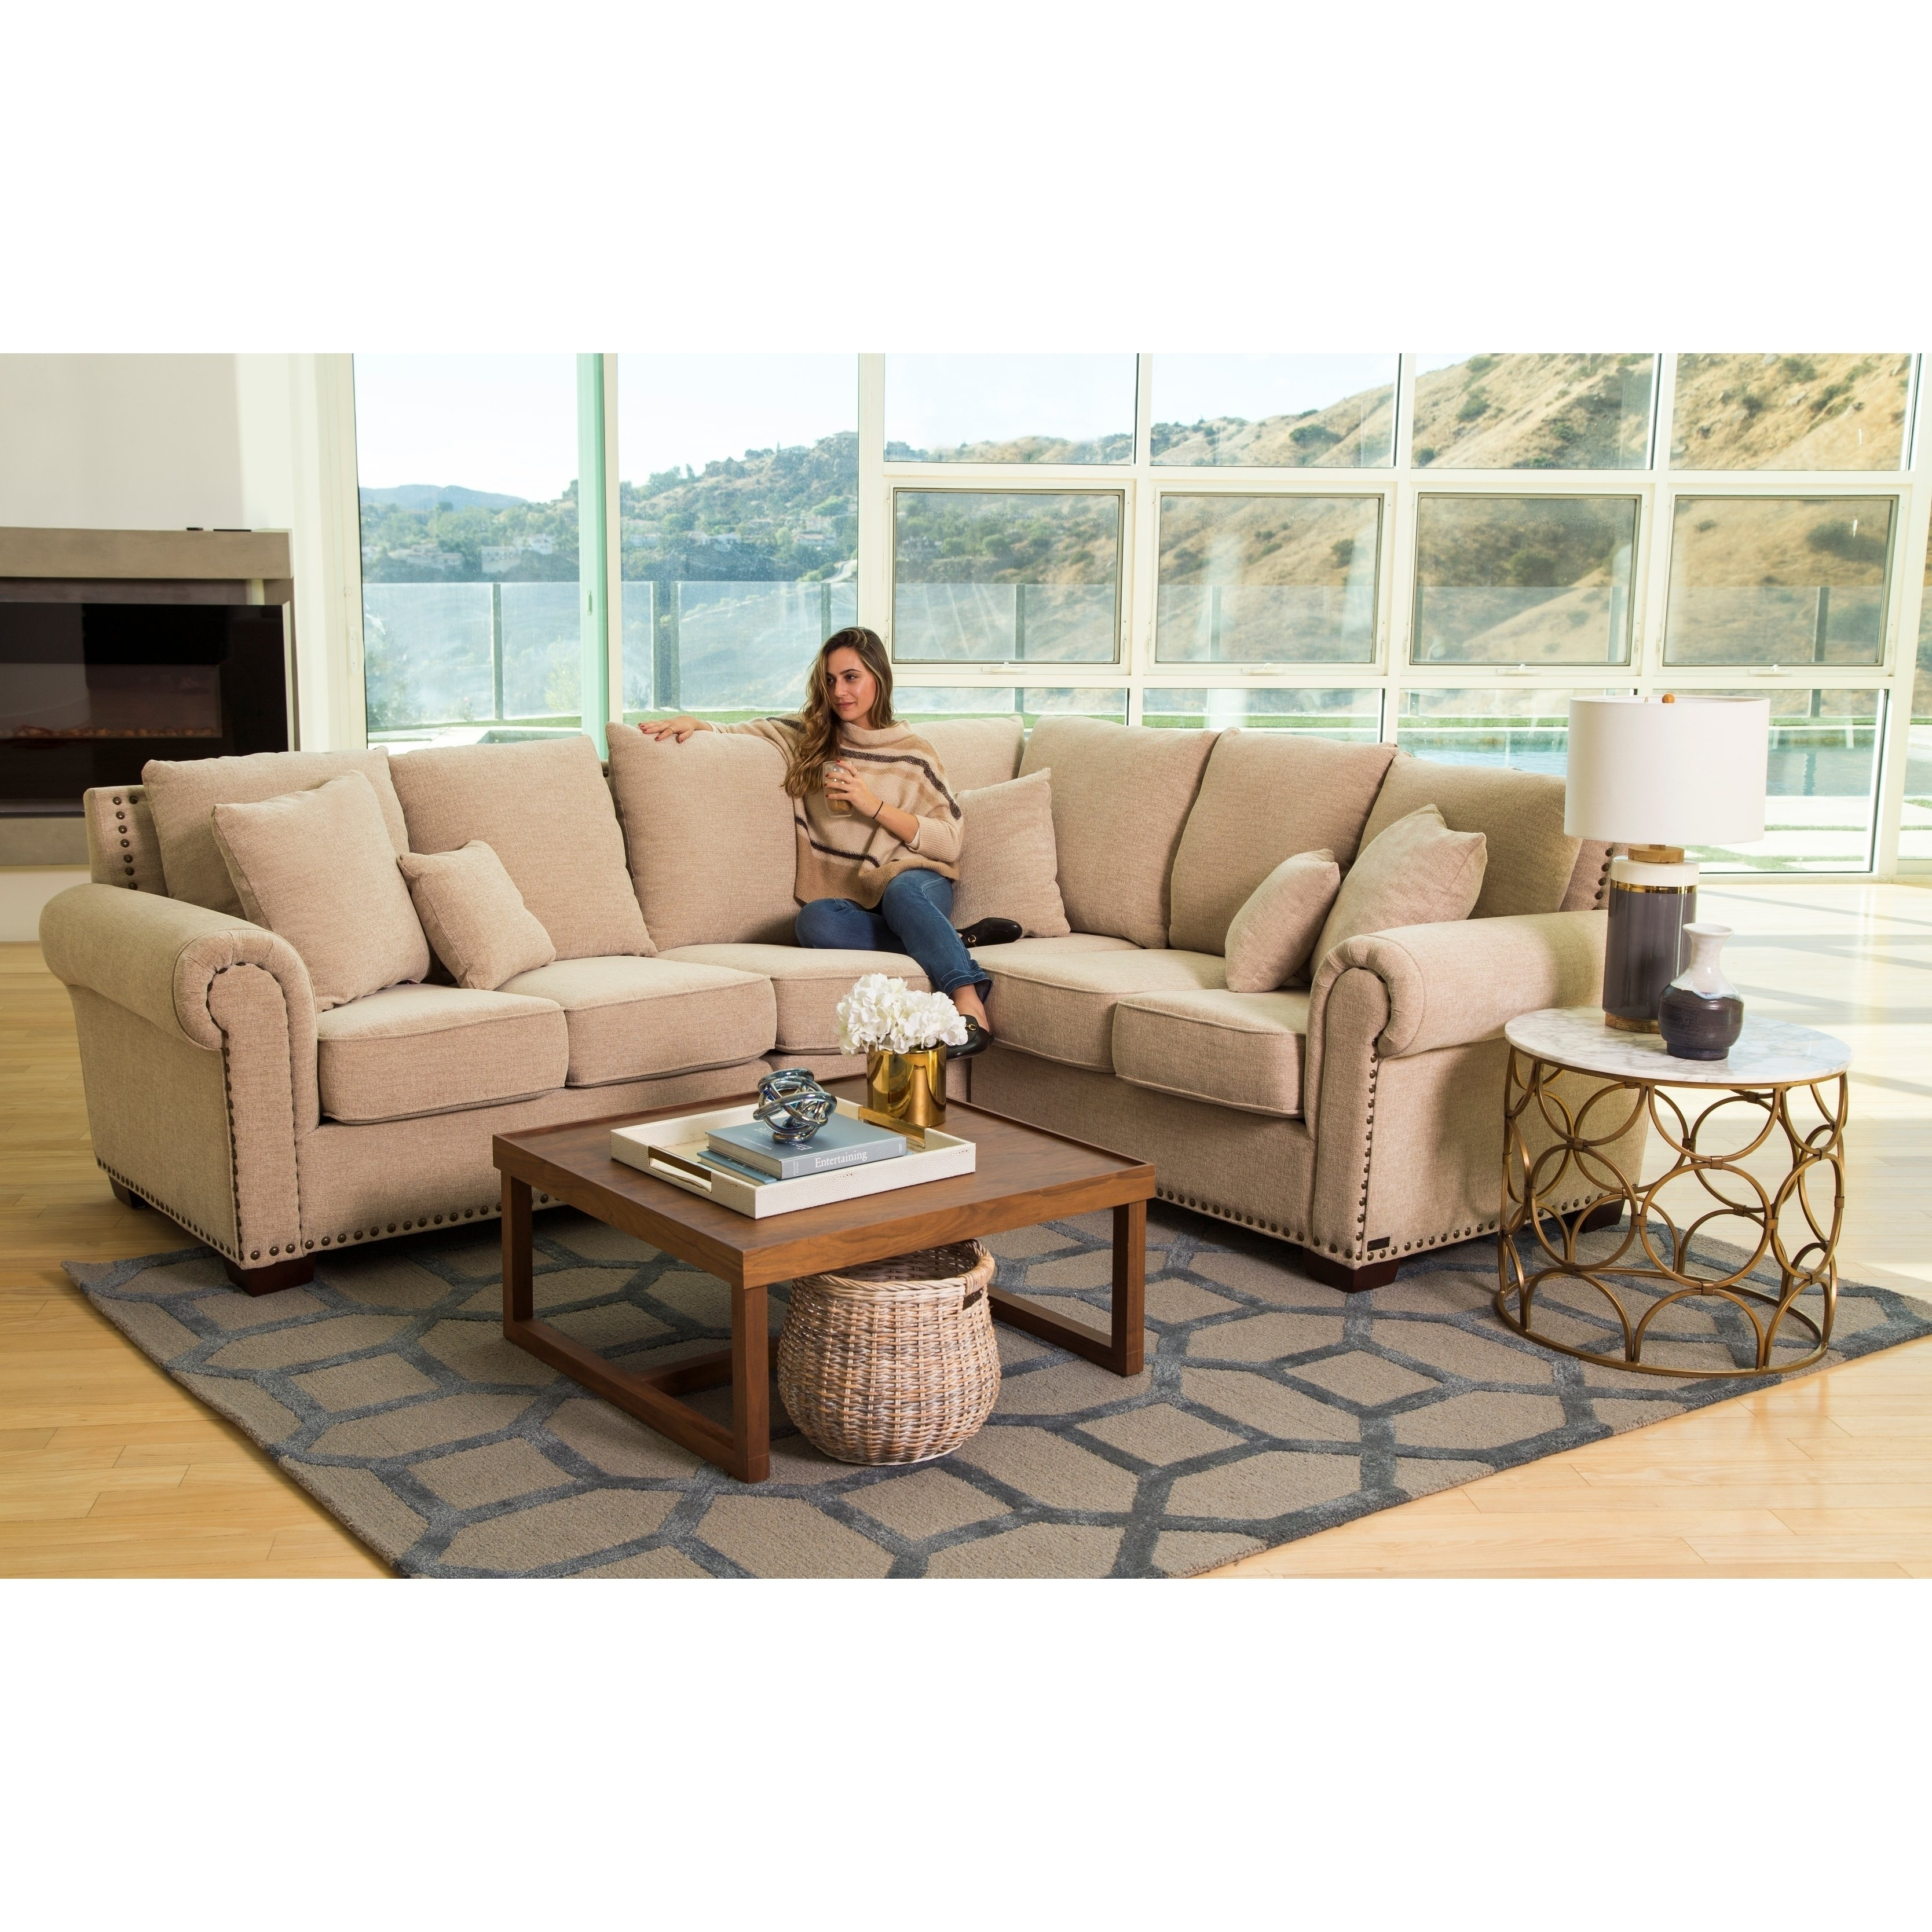 Shop Abbyson Santa Barbara Fabric Sectional - On Sale - Free within Haven Blue Steel 3 Piece Sectionals (Image 26 of 30)